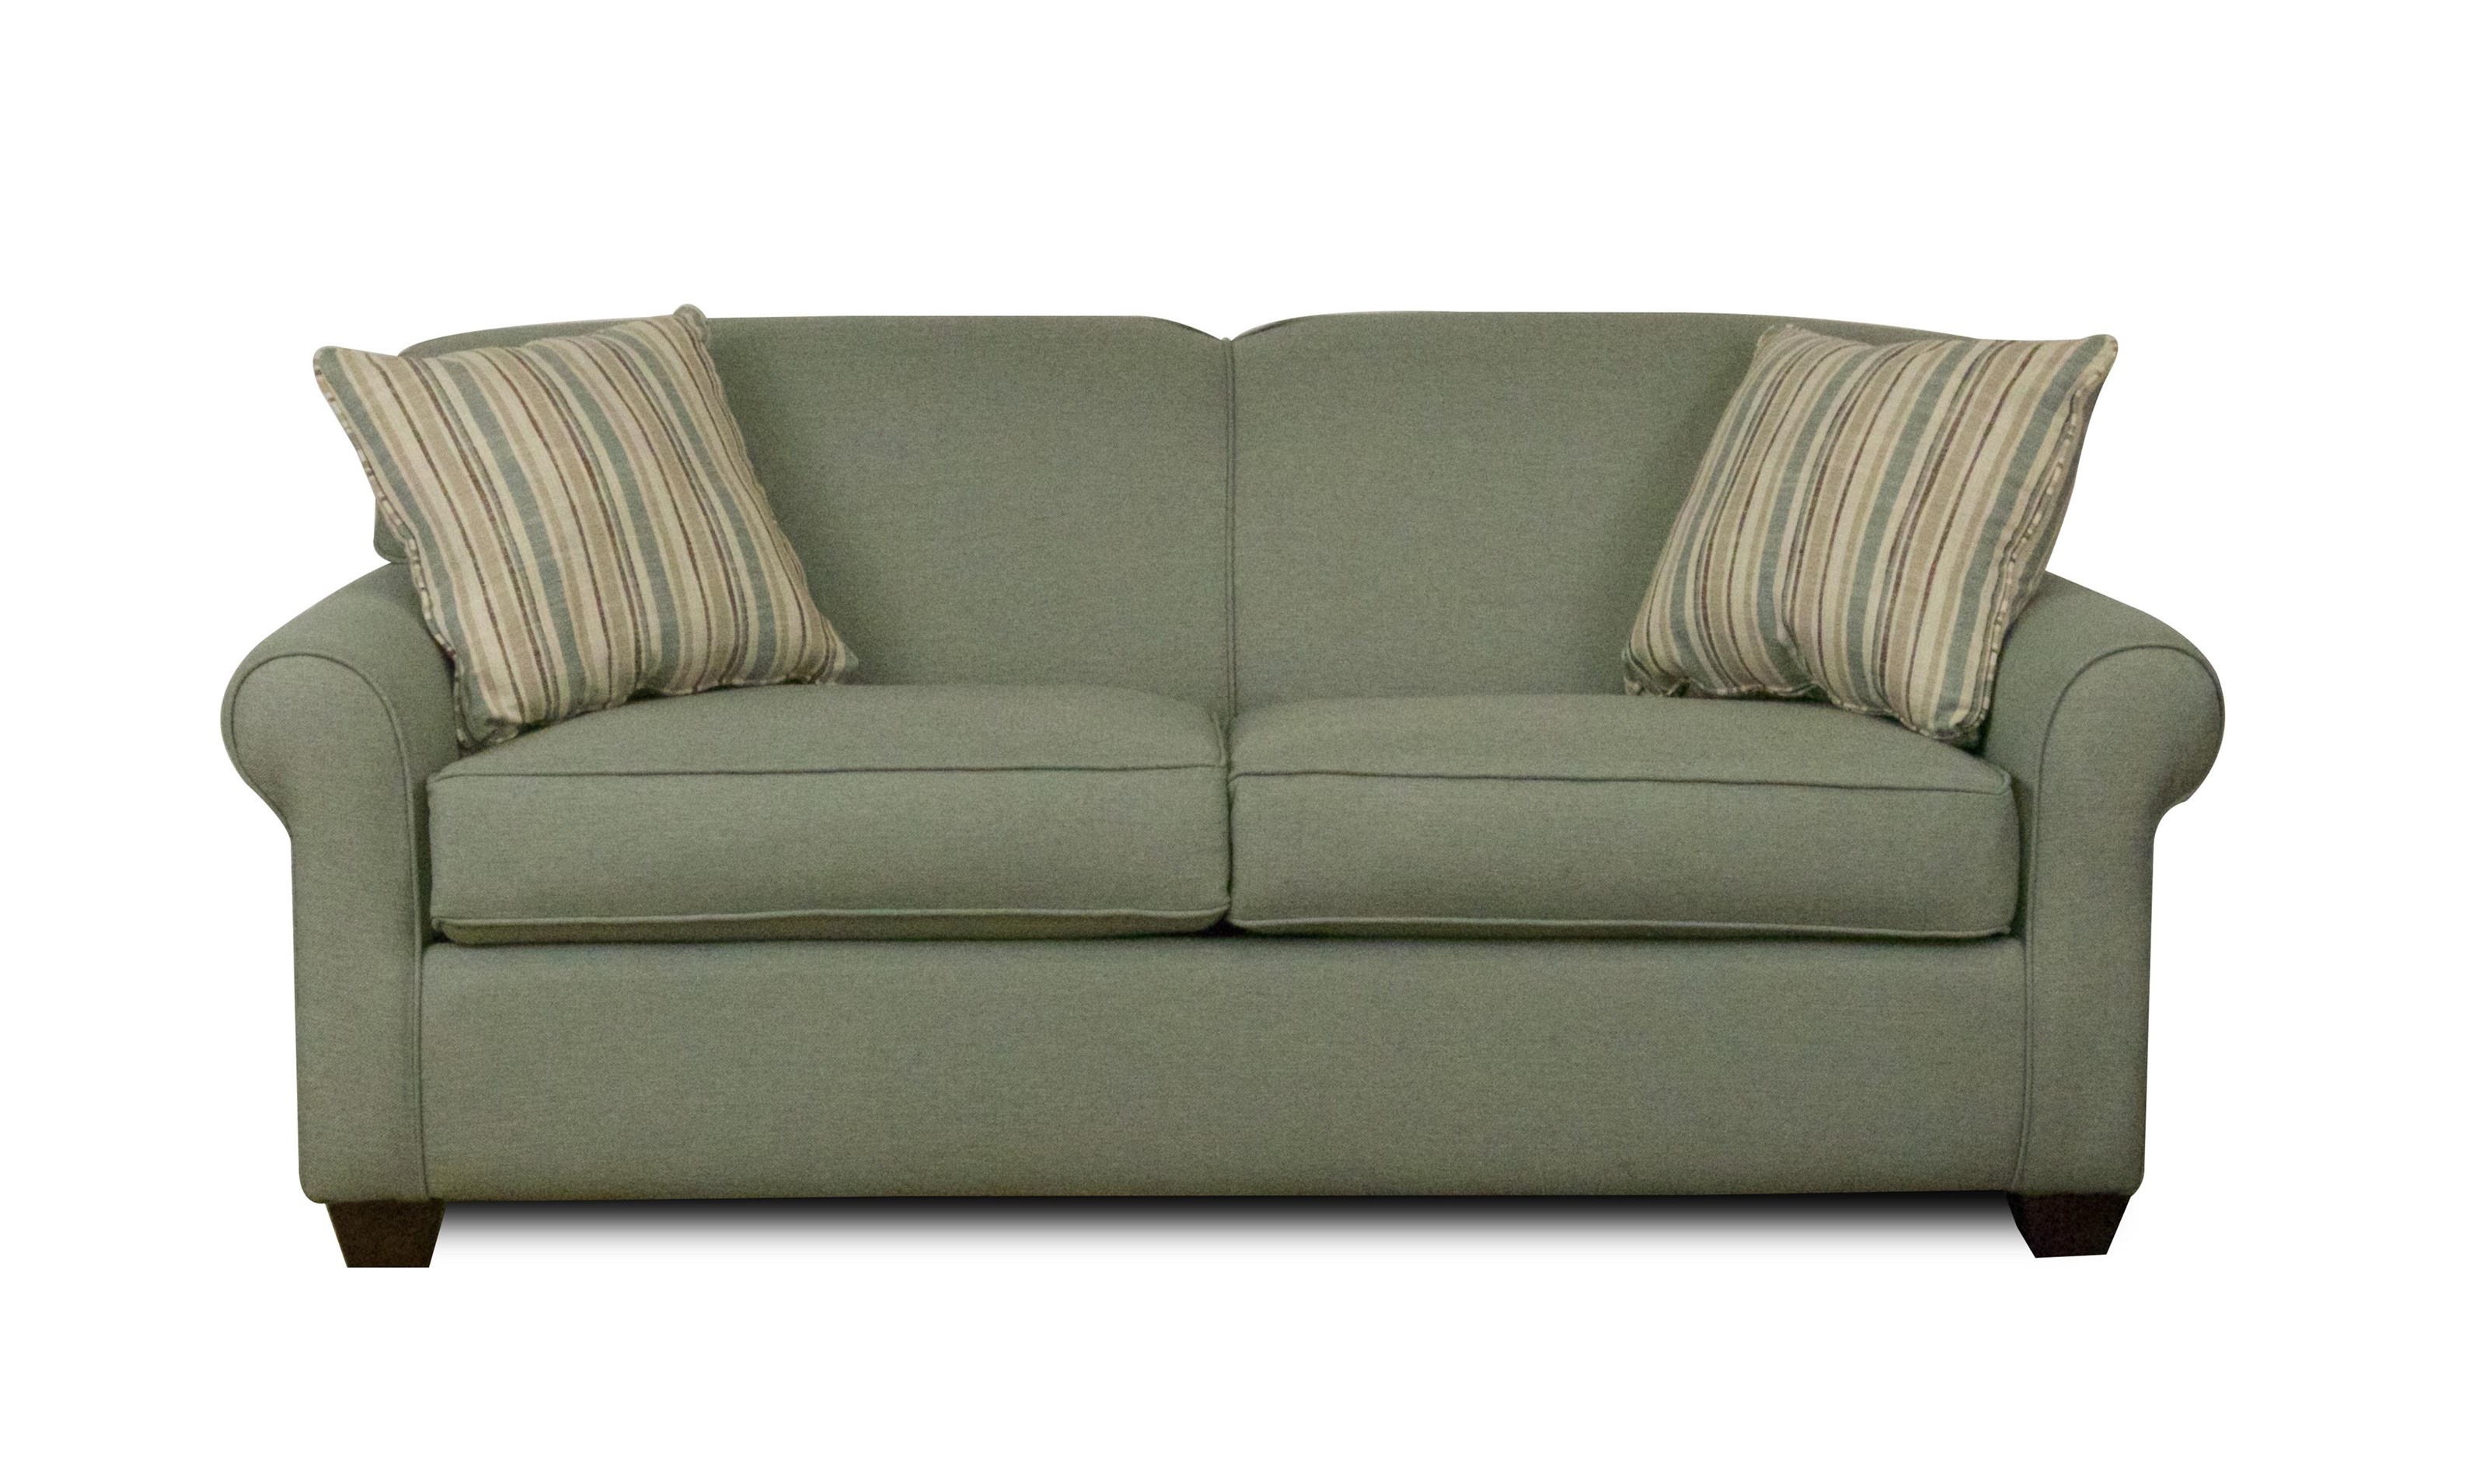 Dreamquest Sofa Sleeper with Accent Pillows